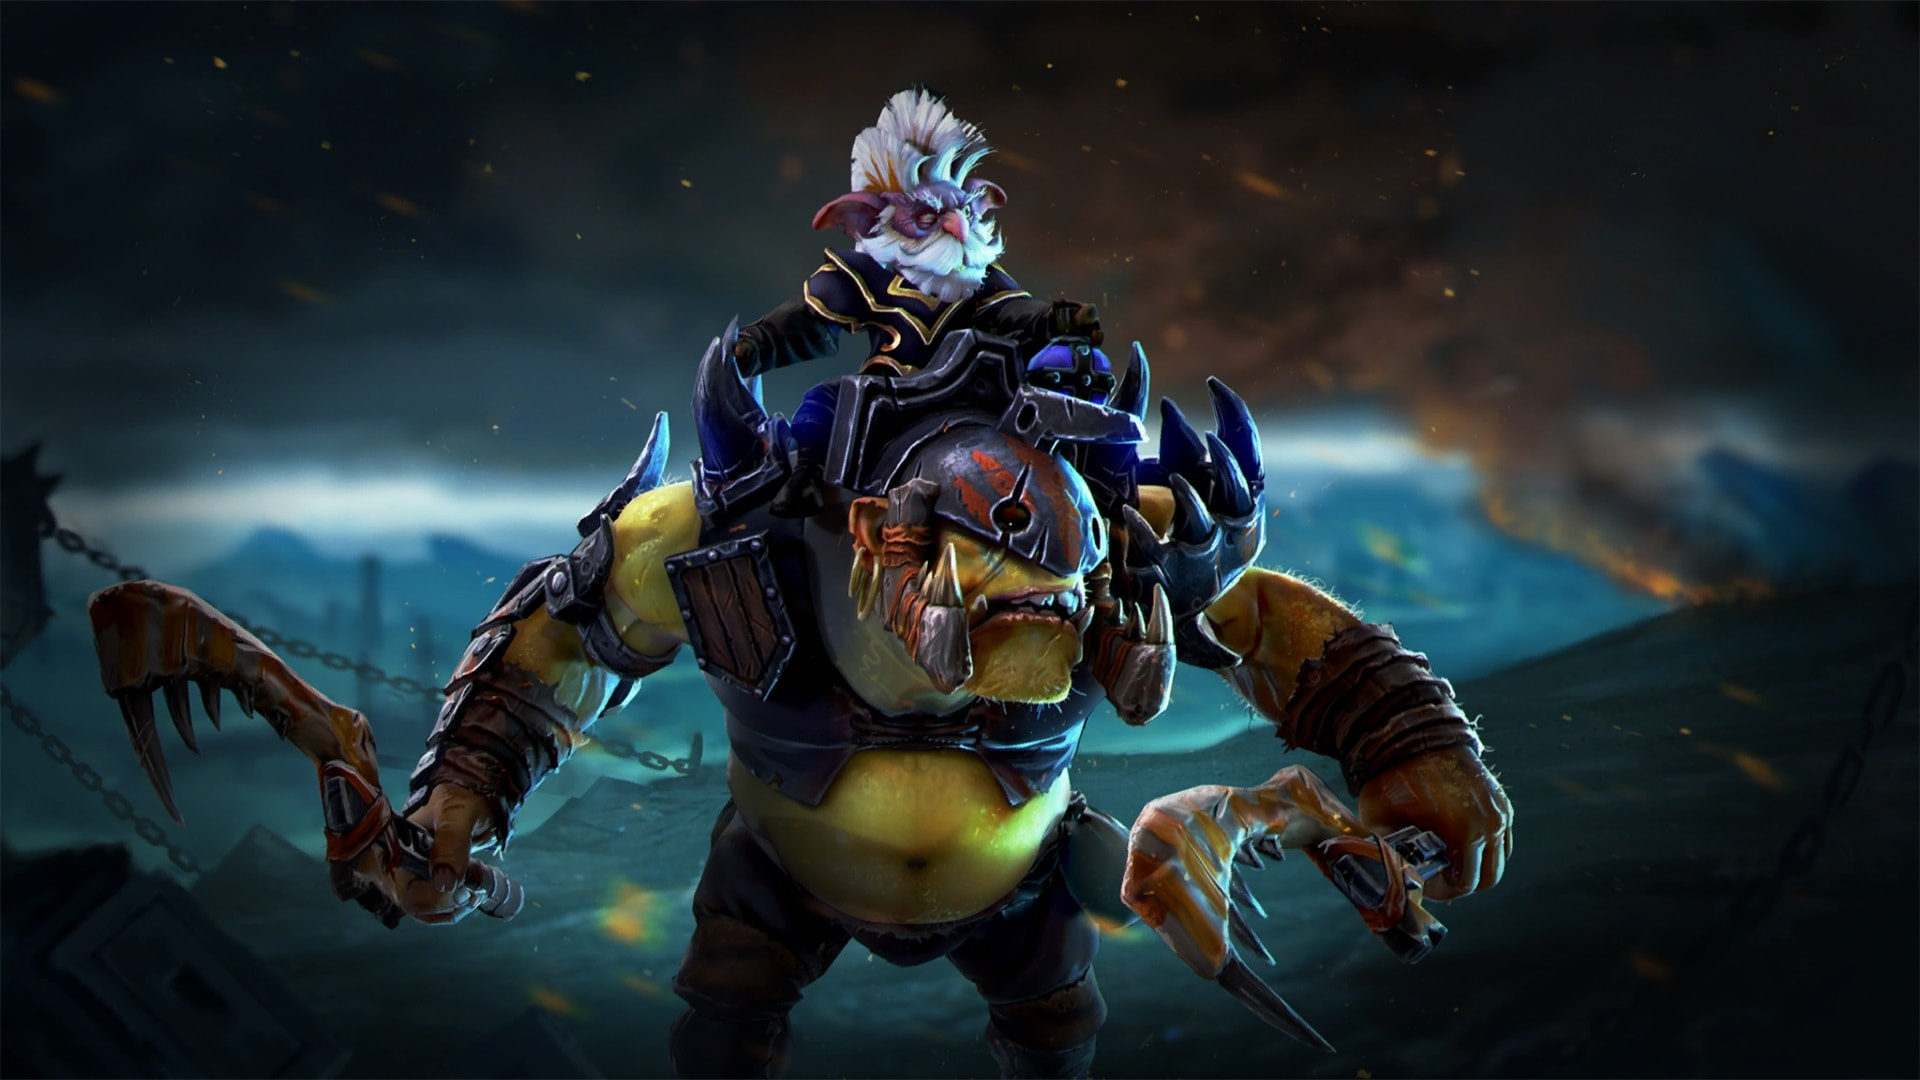 Dota2 : Alchemist widescreen wallpapers